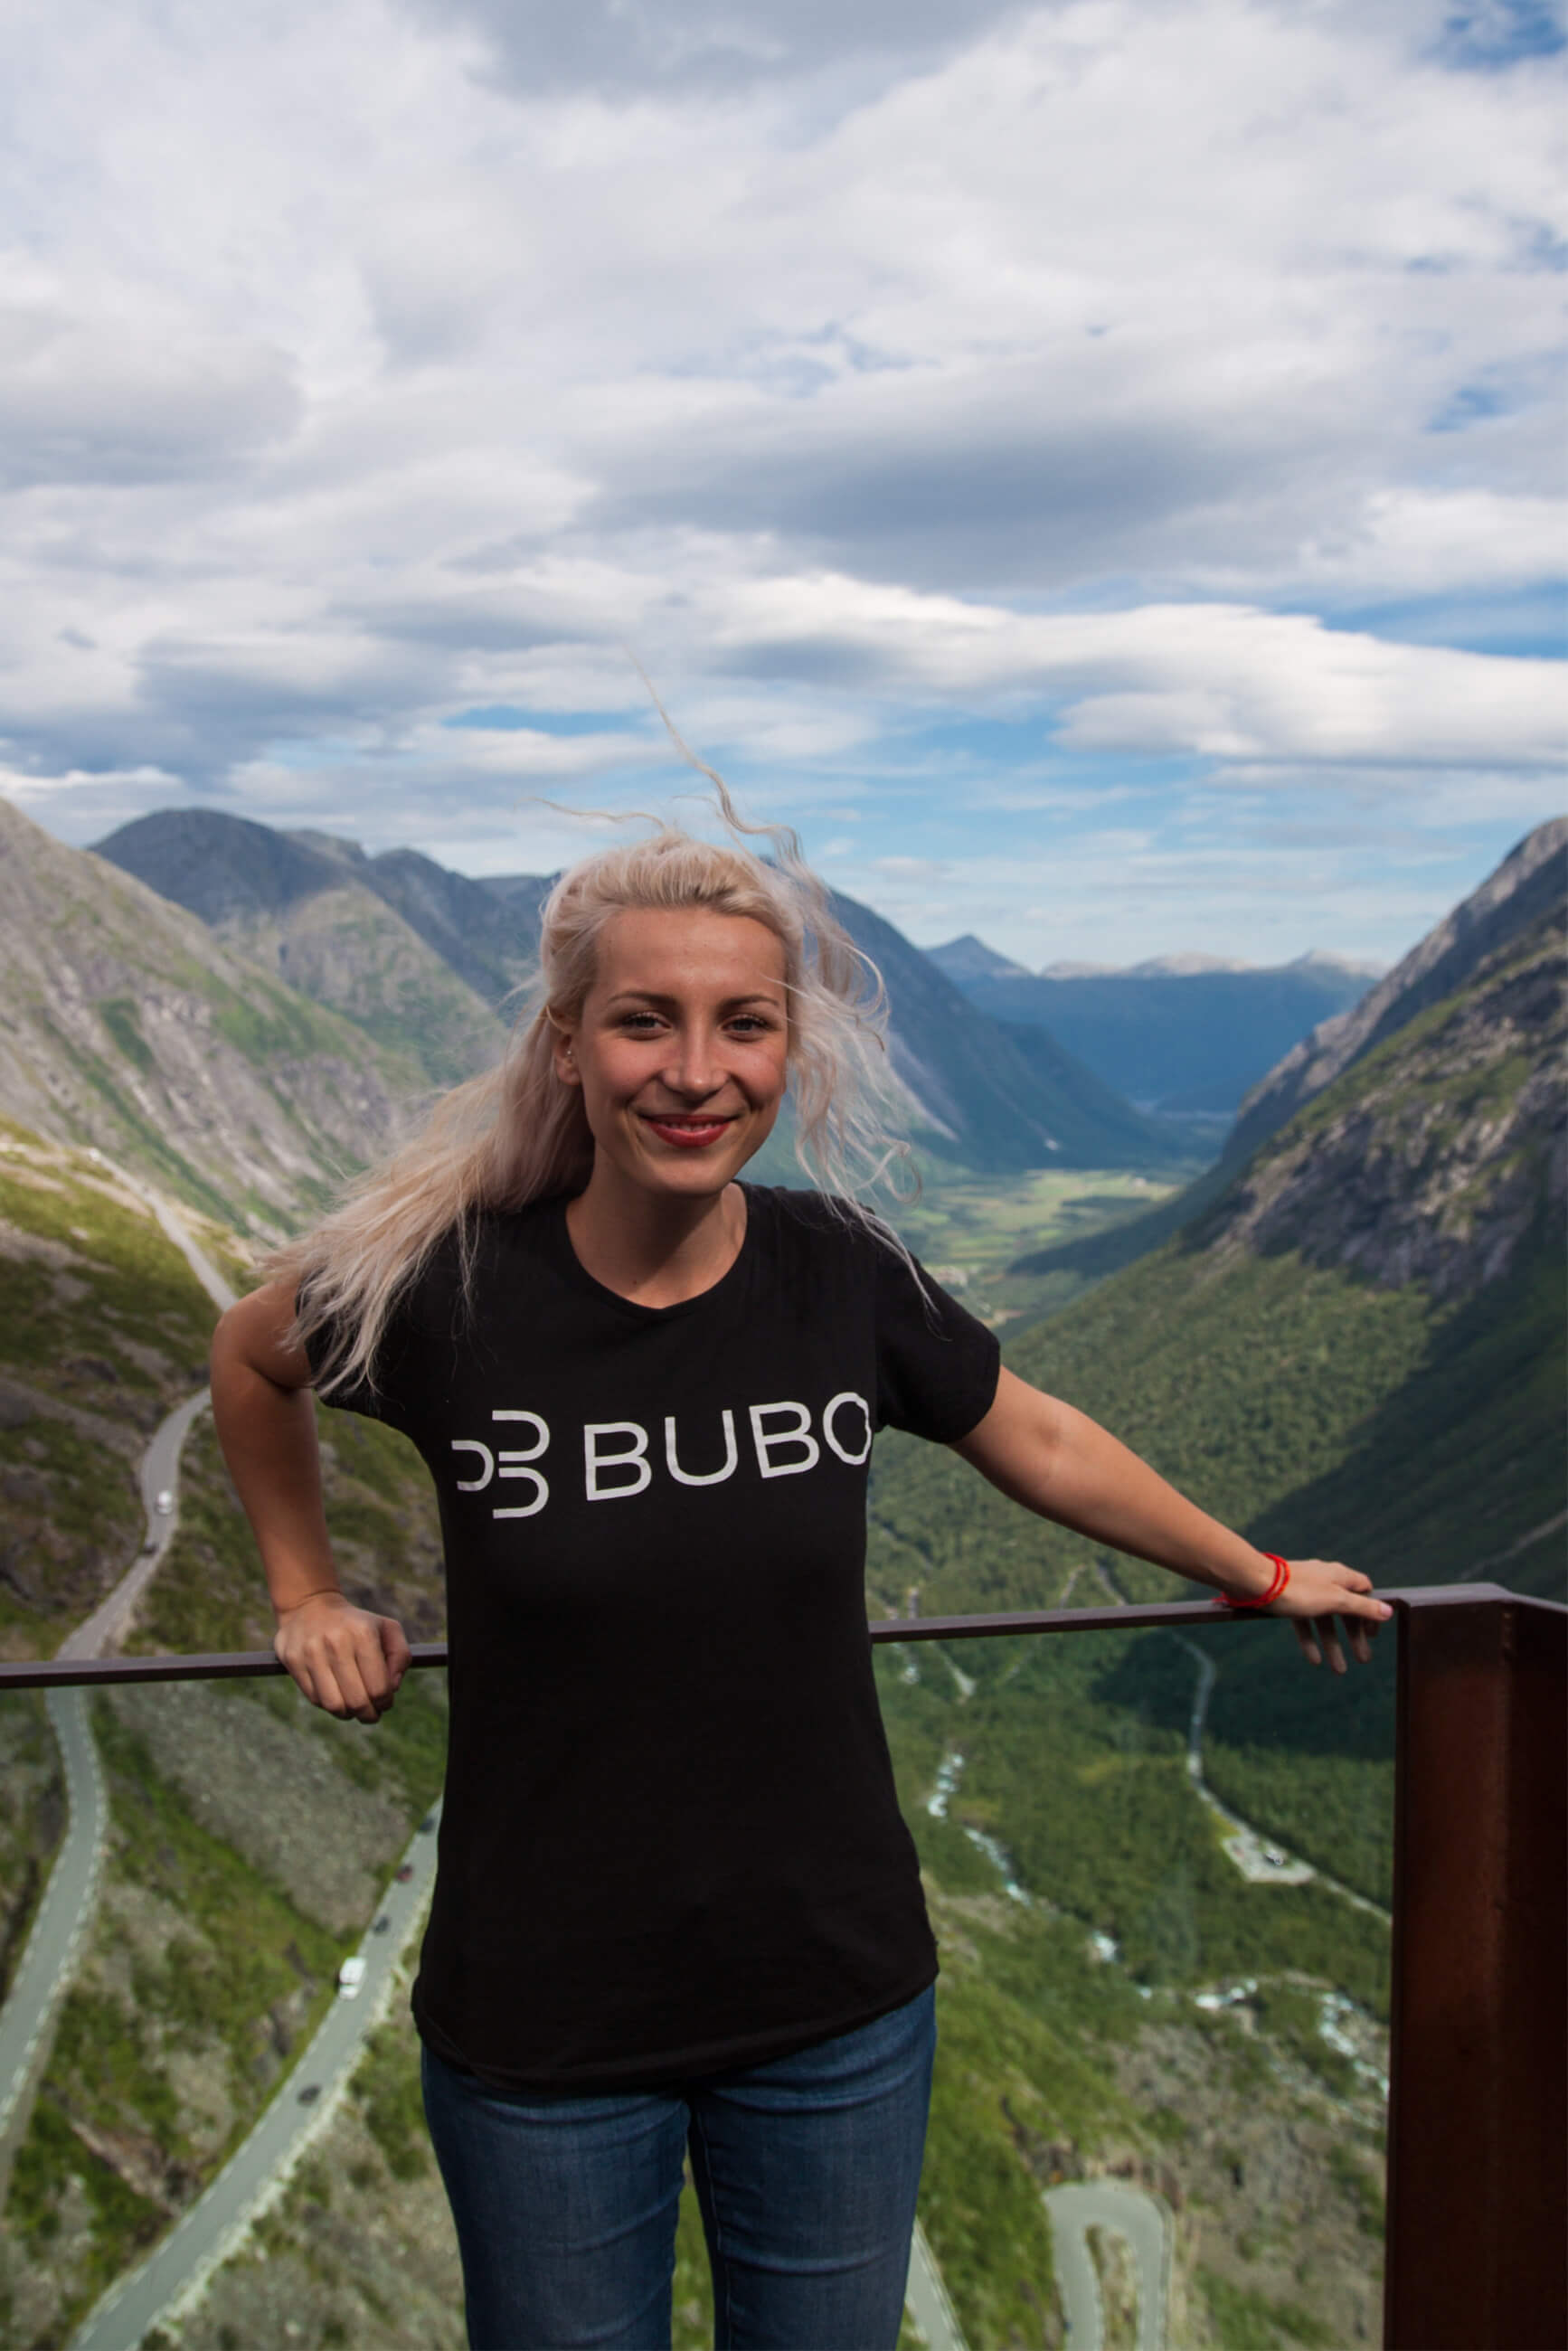 https://bubo.sk/uploads/galleries/5044/trollstigen.jpg